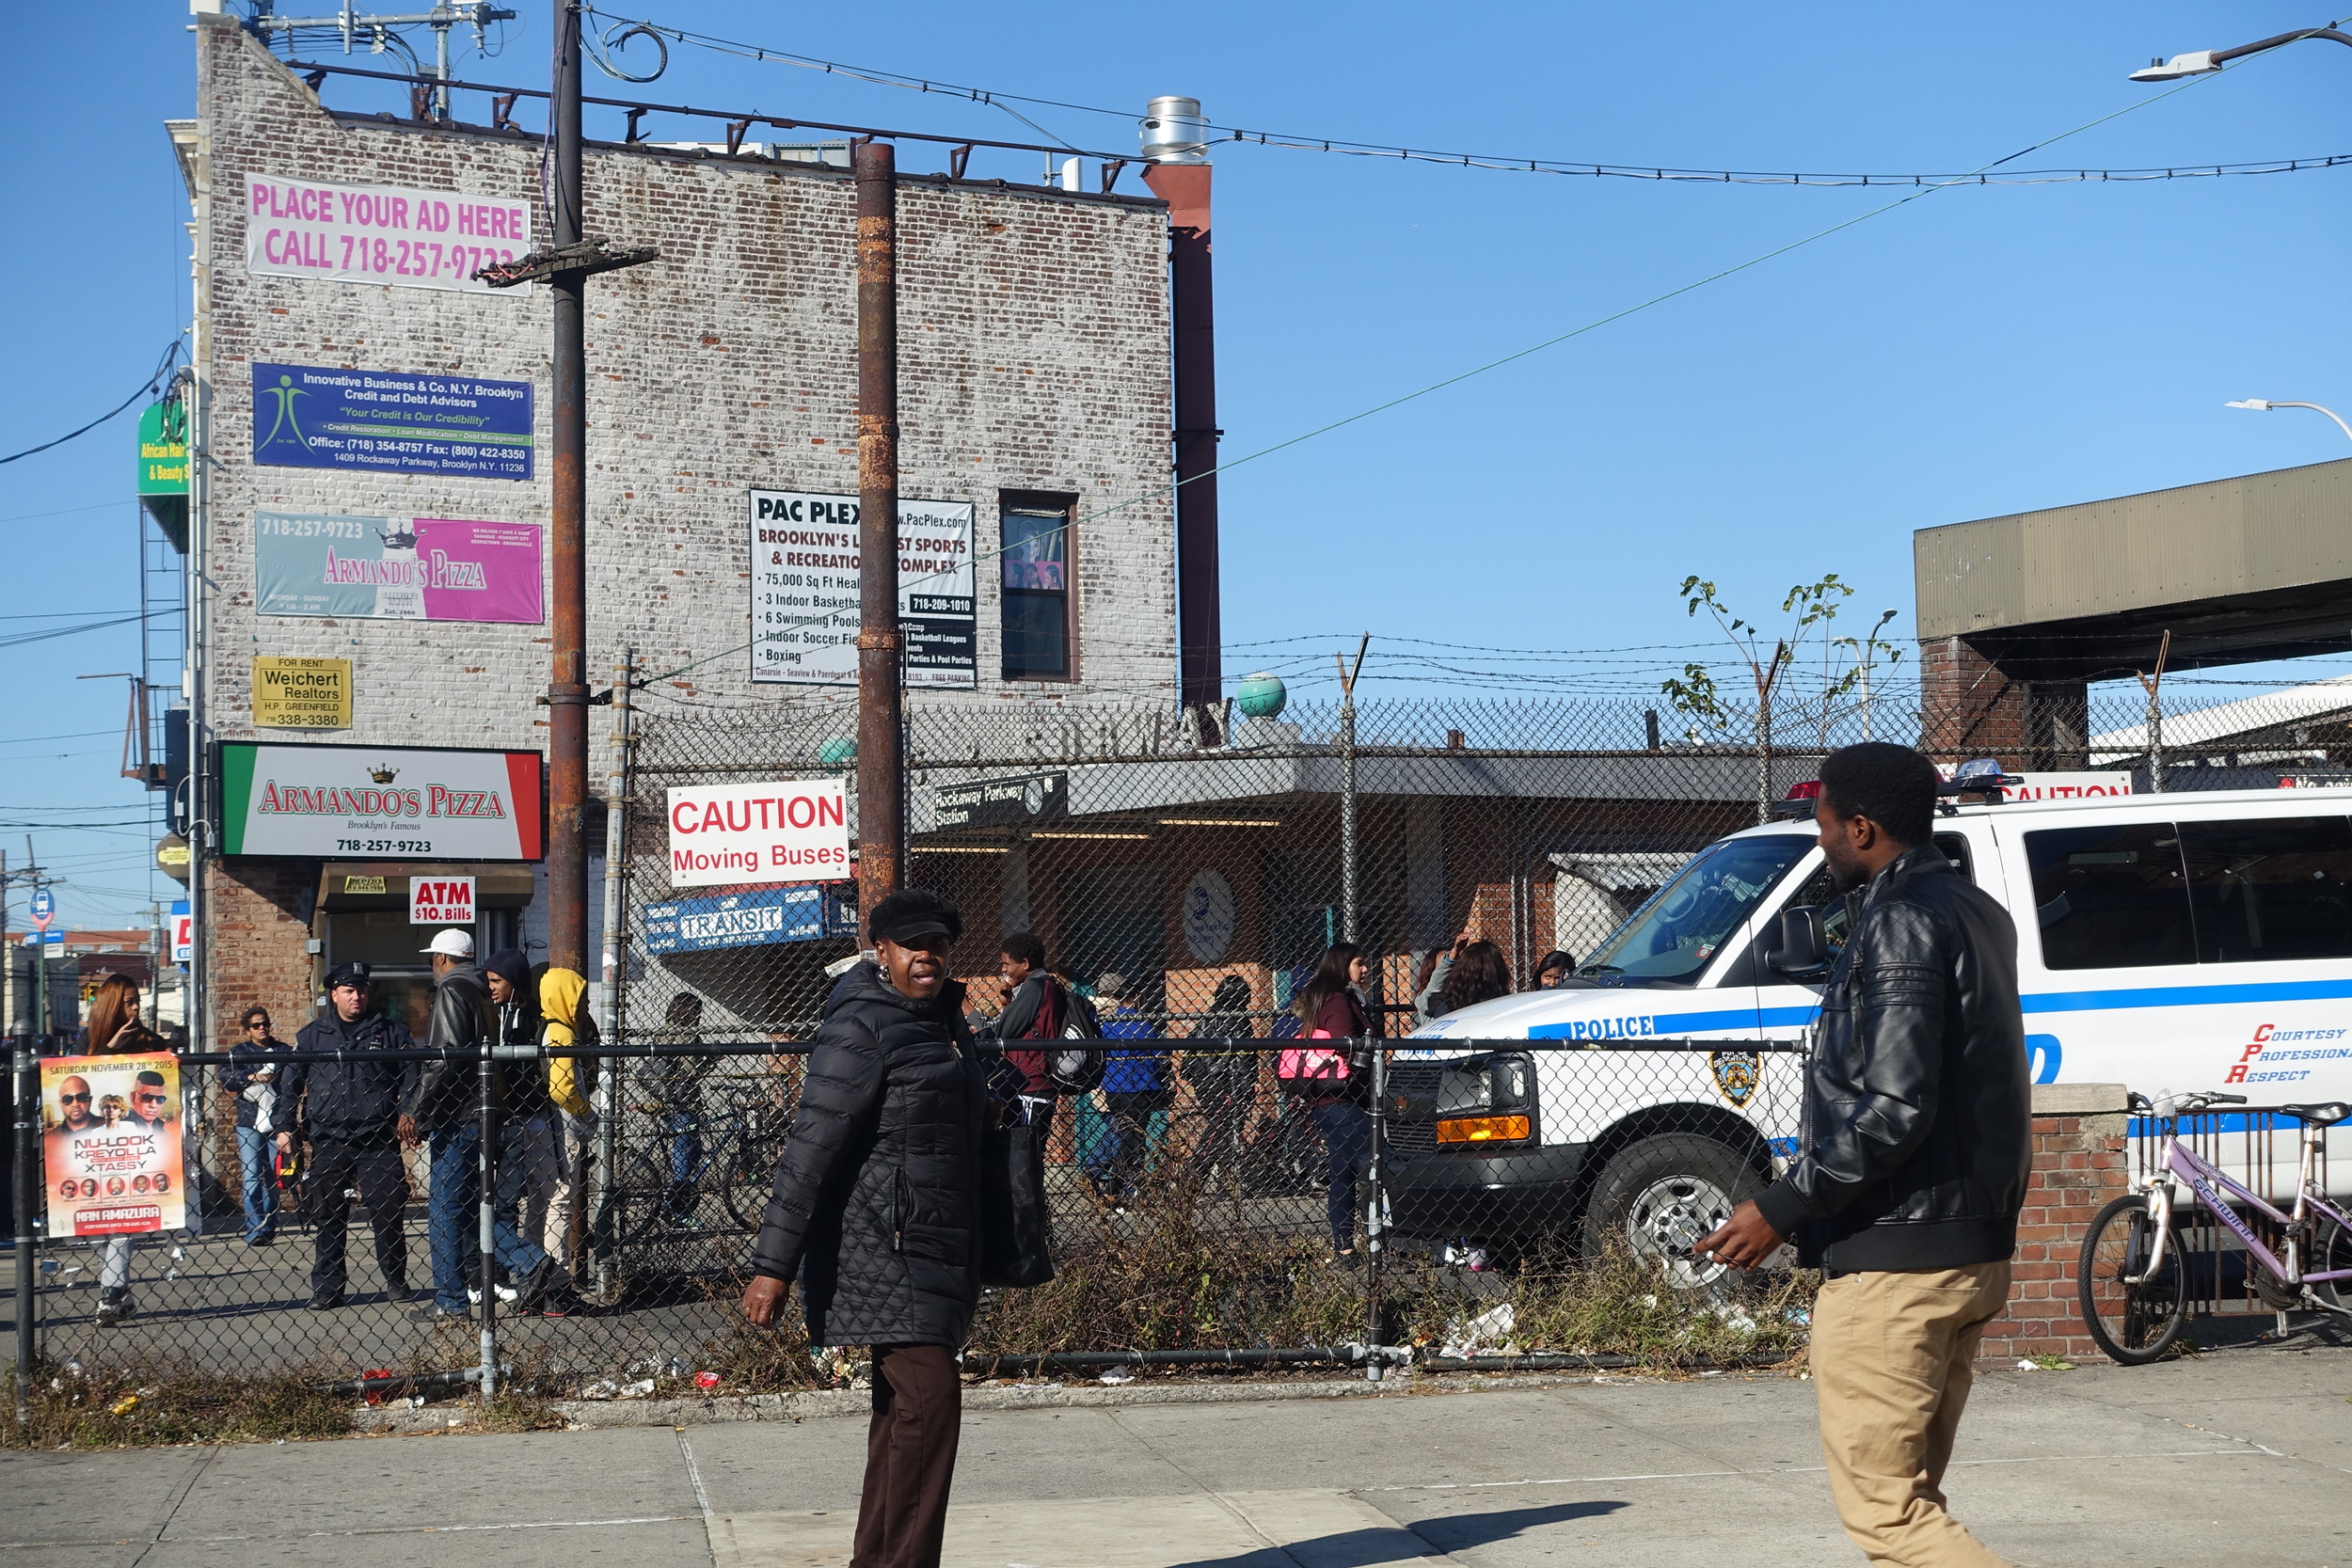 The main drag is lined with take-out restaurants, bodegas, laundromats and other basic necessity shops. It is a working class neighborhood like many urban areas has its rough patches.